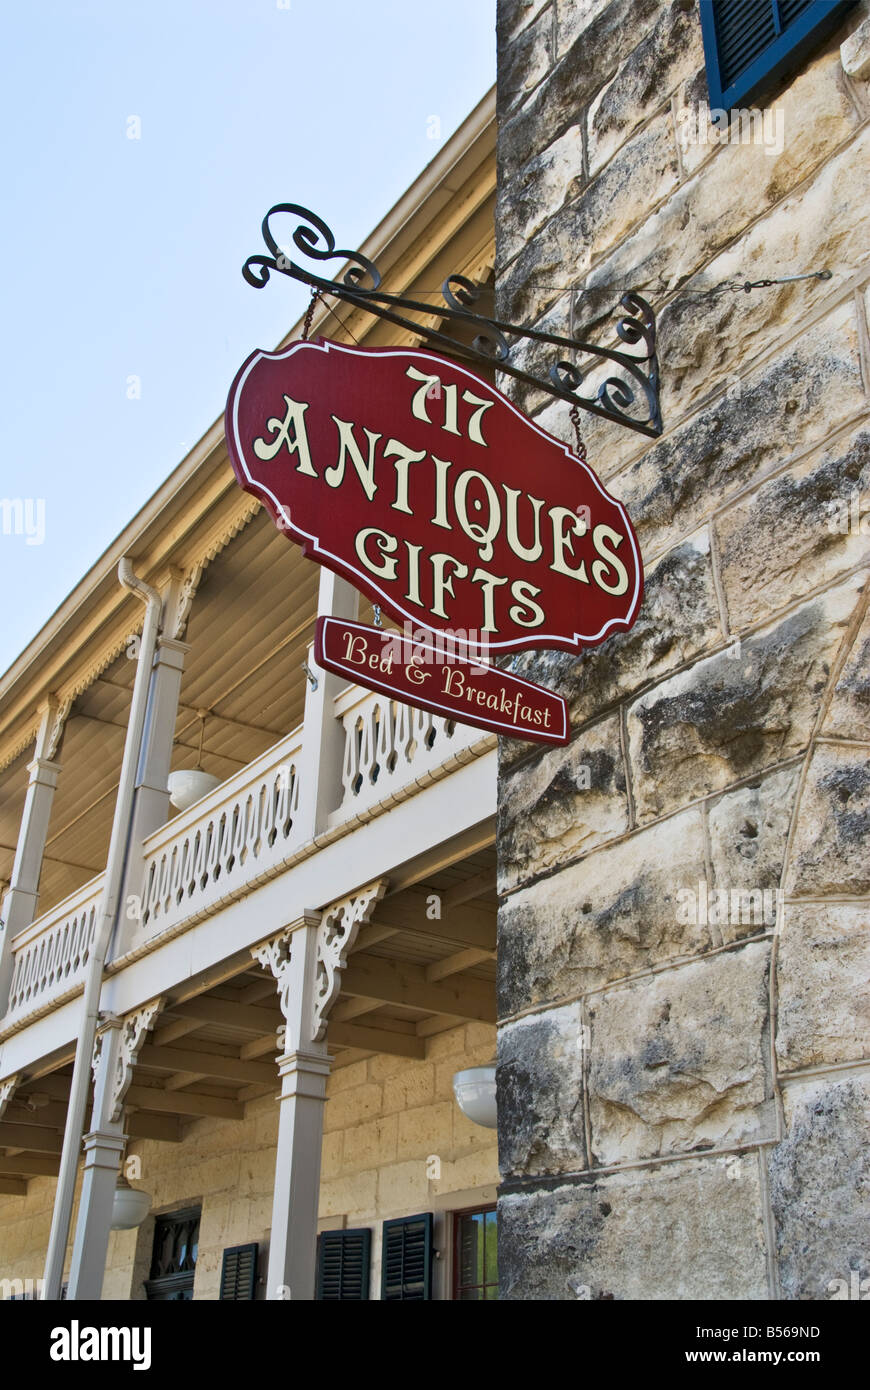 Texas Hill Country Comfort National Historic District Ingenhuett Faust Hotel B and B antique shop - Stock Image